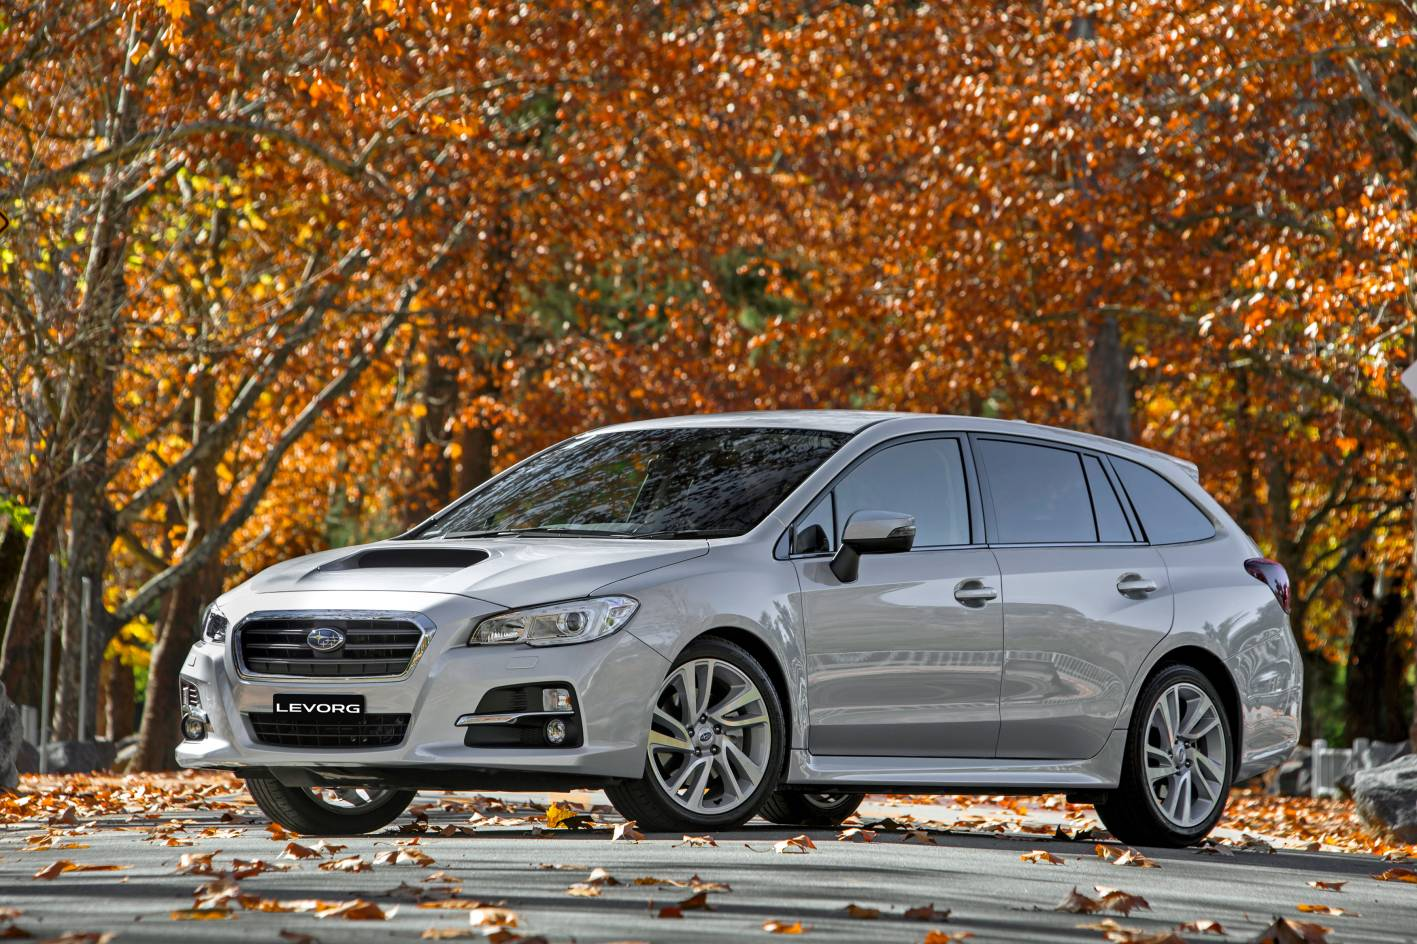 Subaru Levorg Vs Outback >> 2017 Subaru Levorg wagon launches in Australia